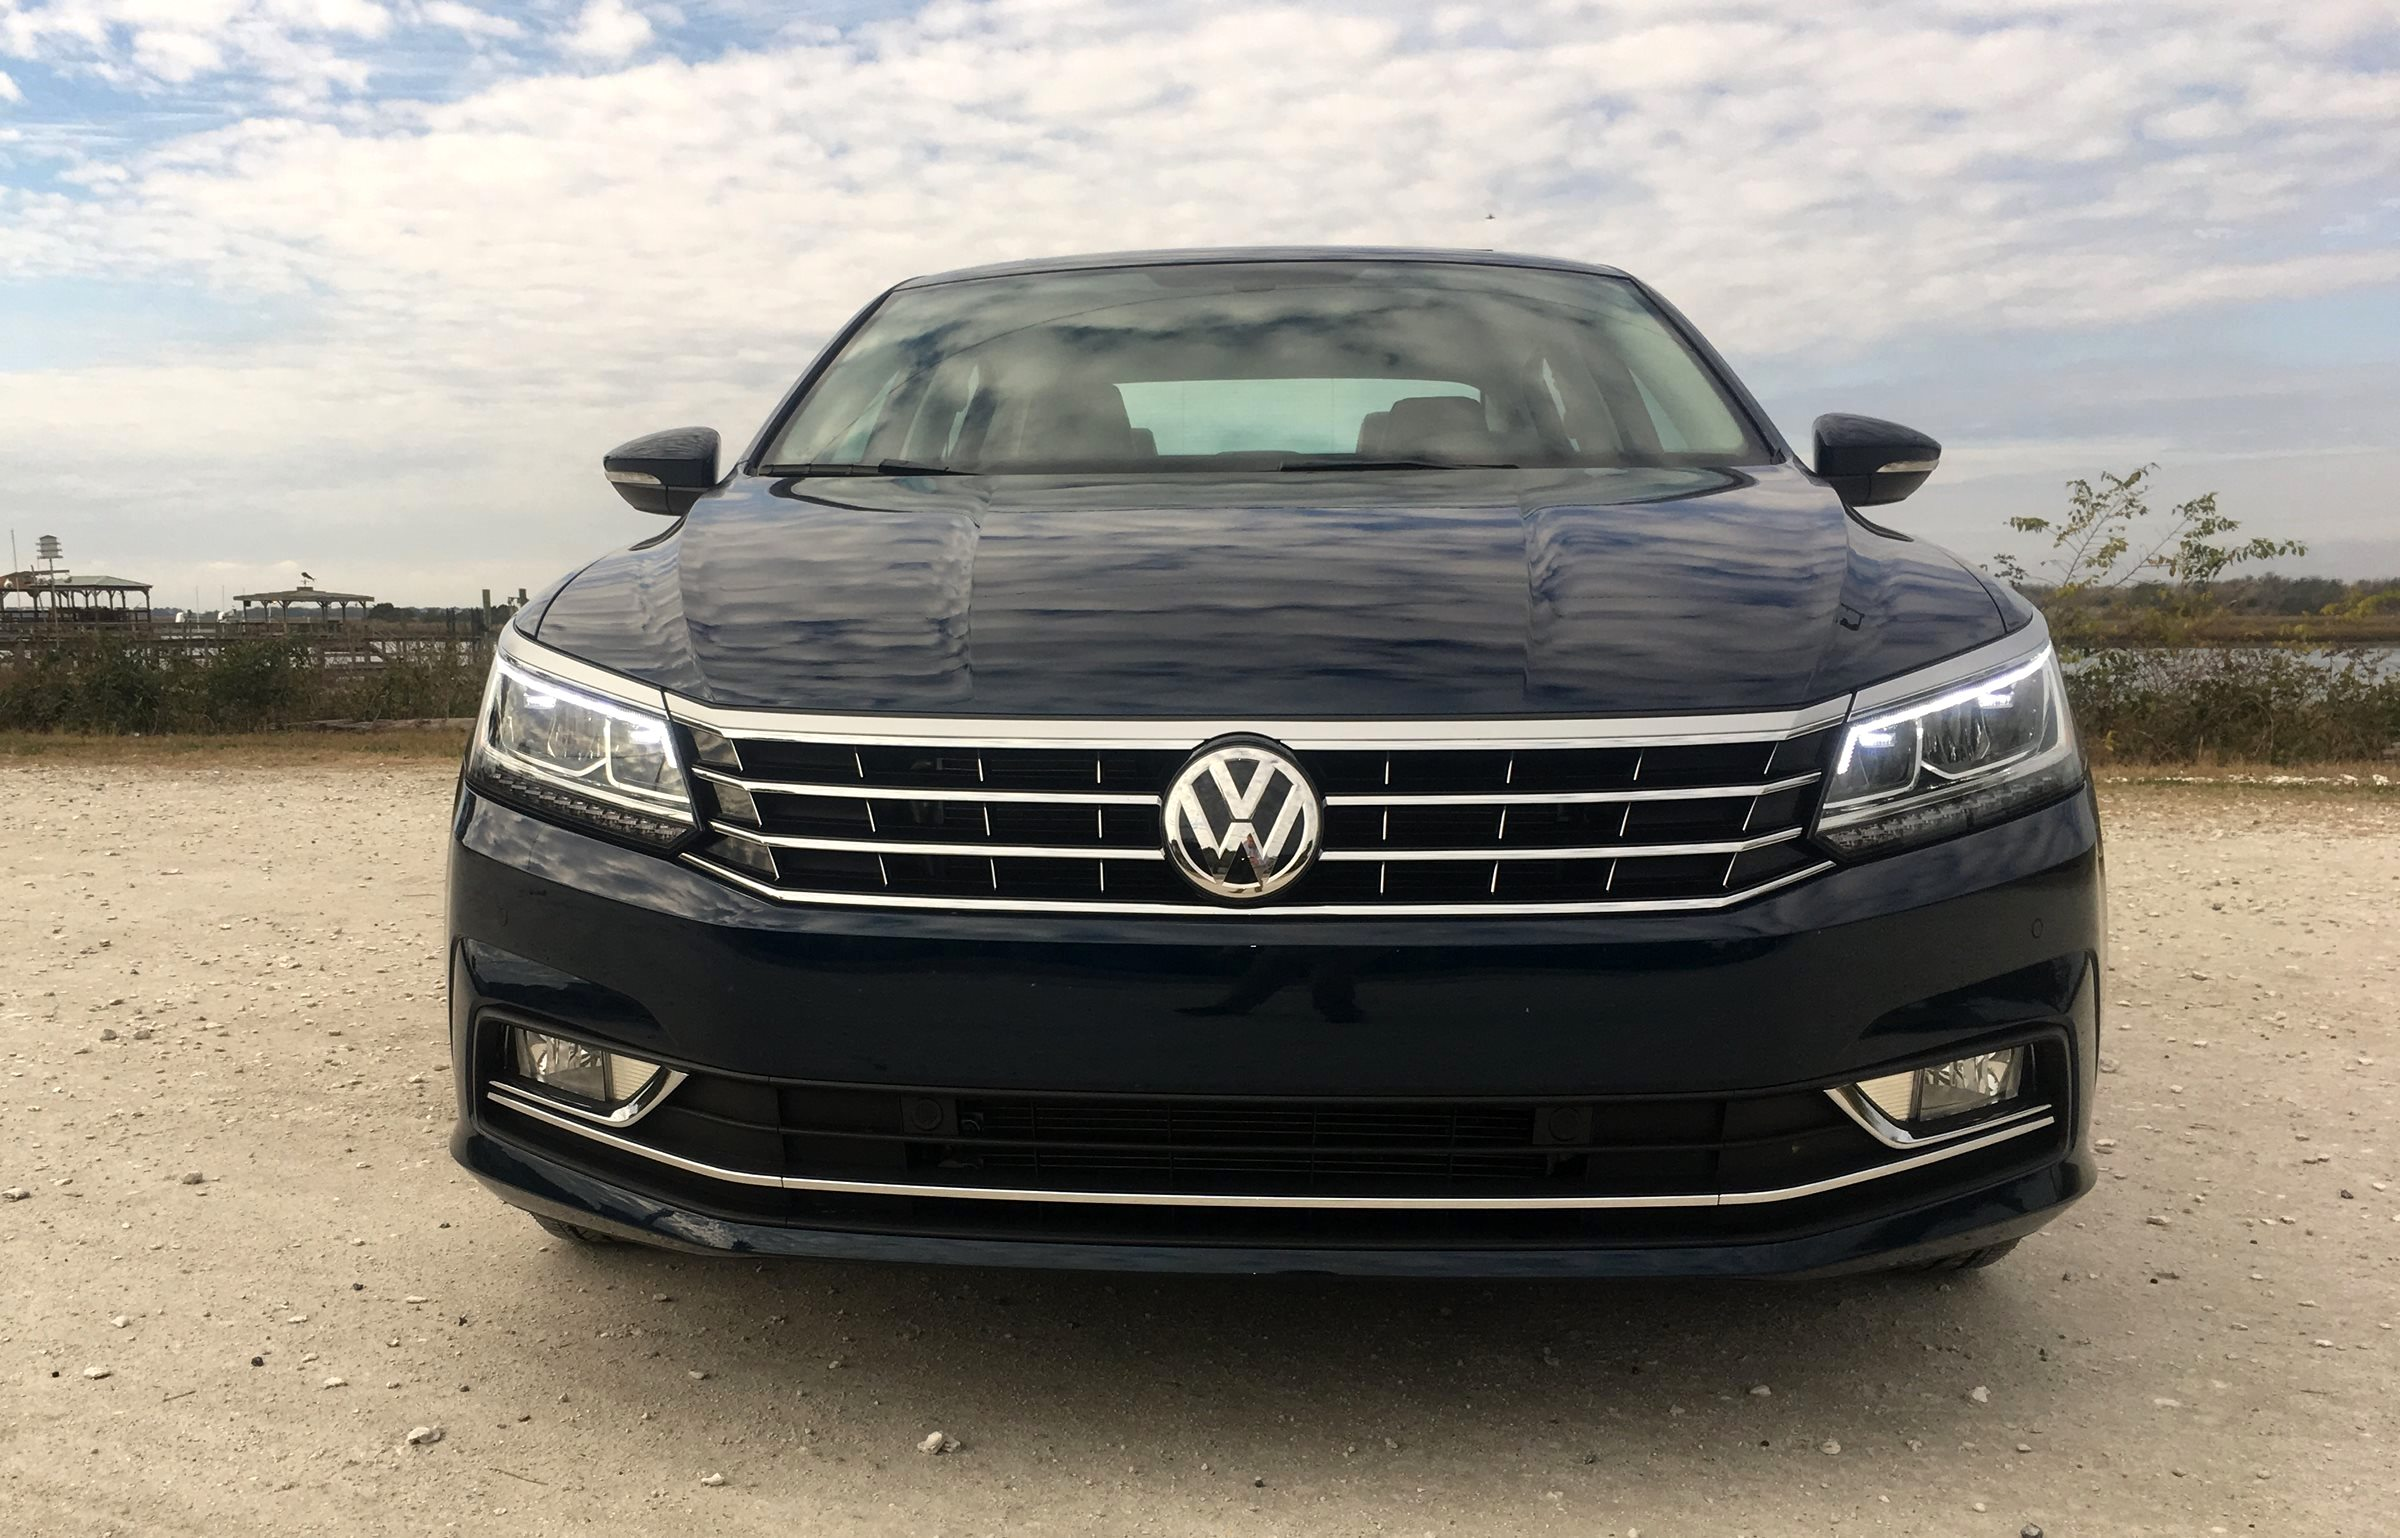 2018 vw passat se 2 0t w technology road test review. Black Bedroom Furniture Sets. Home Design Ideas